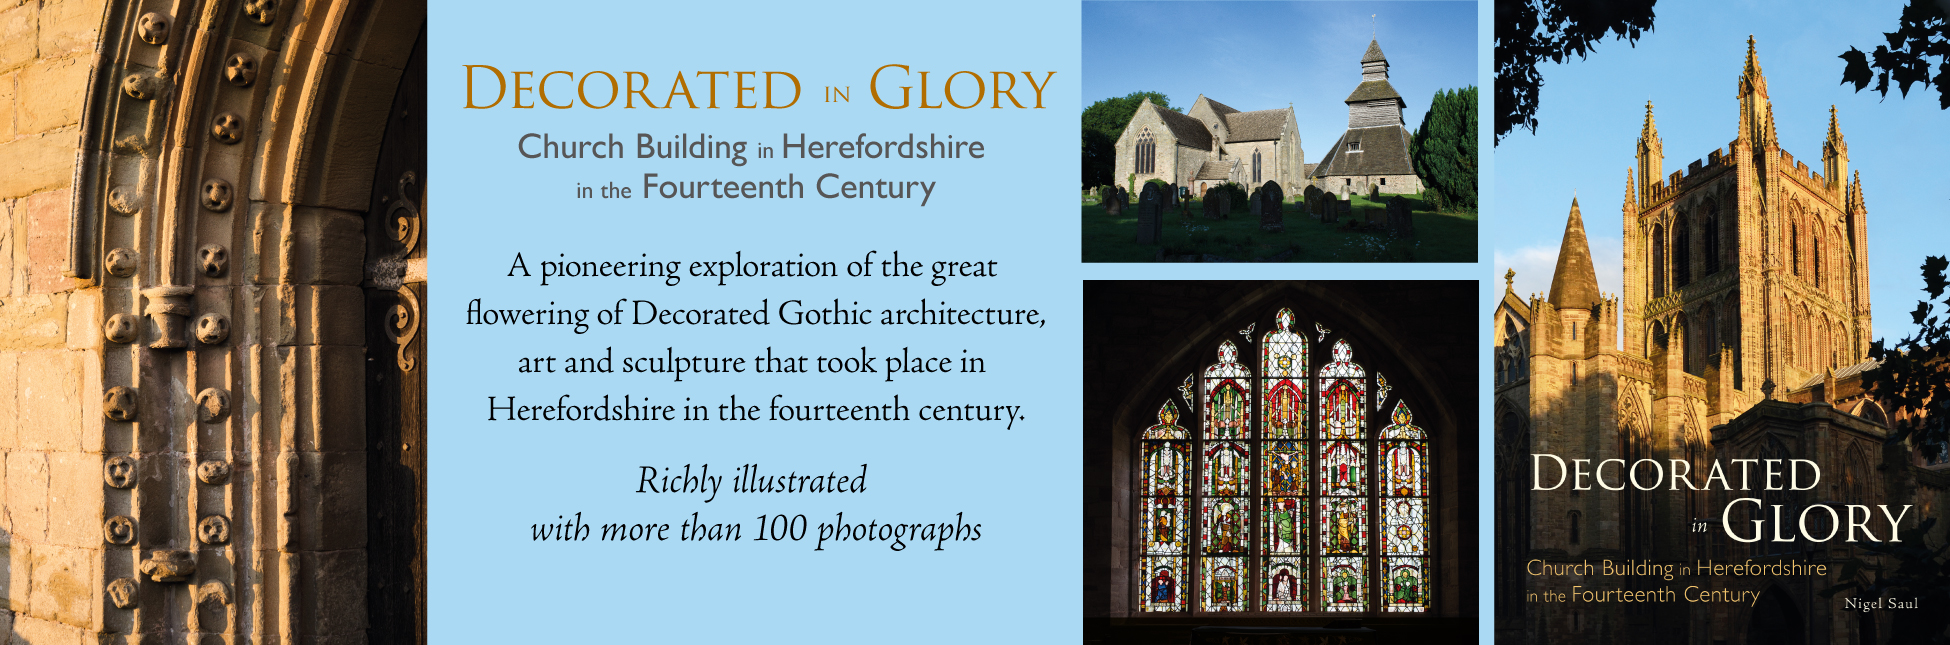 Decorated in Glory banner